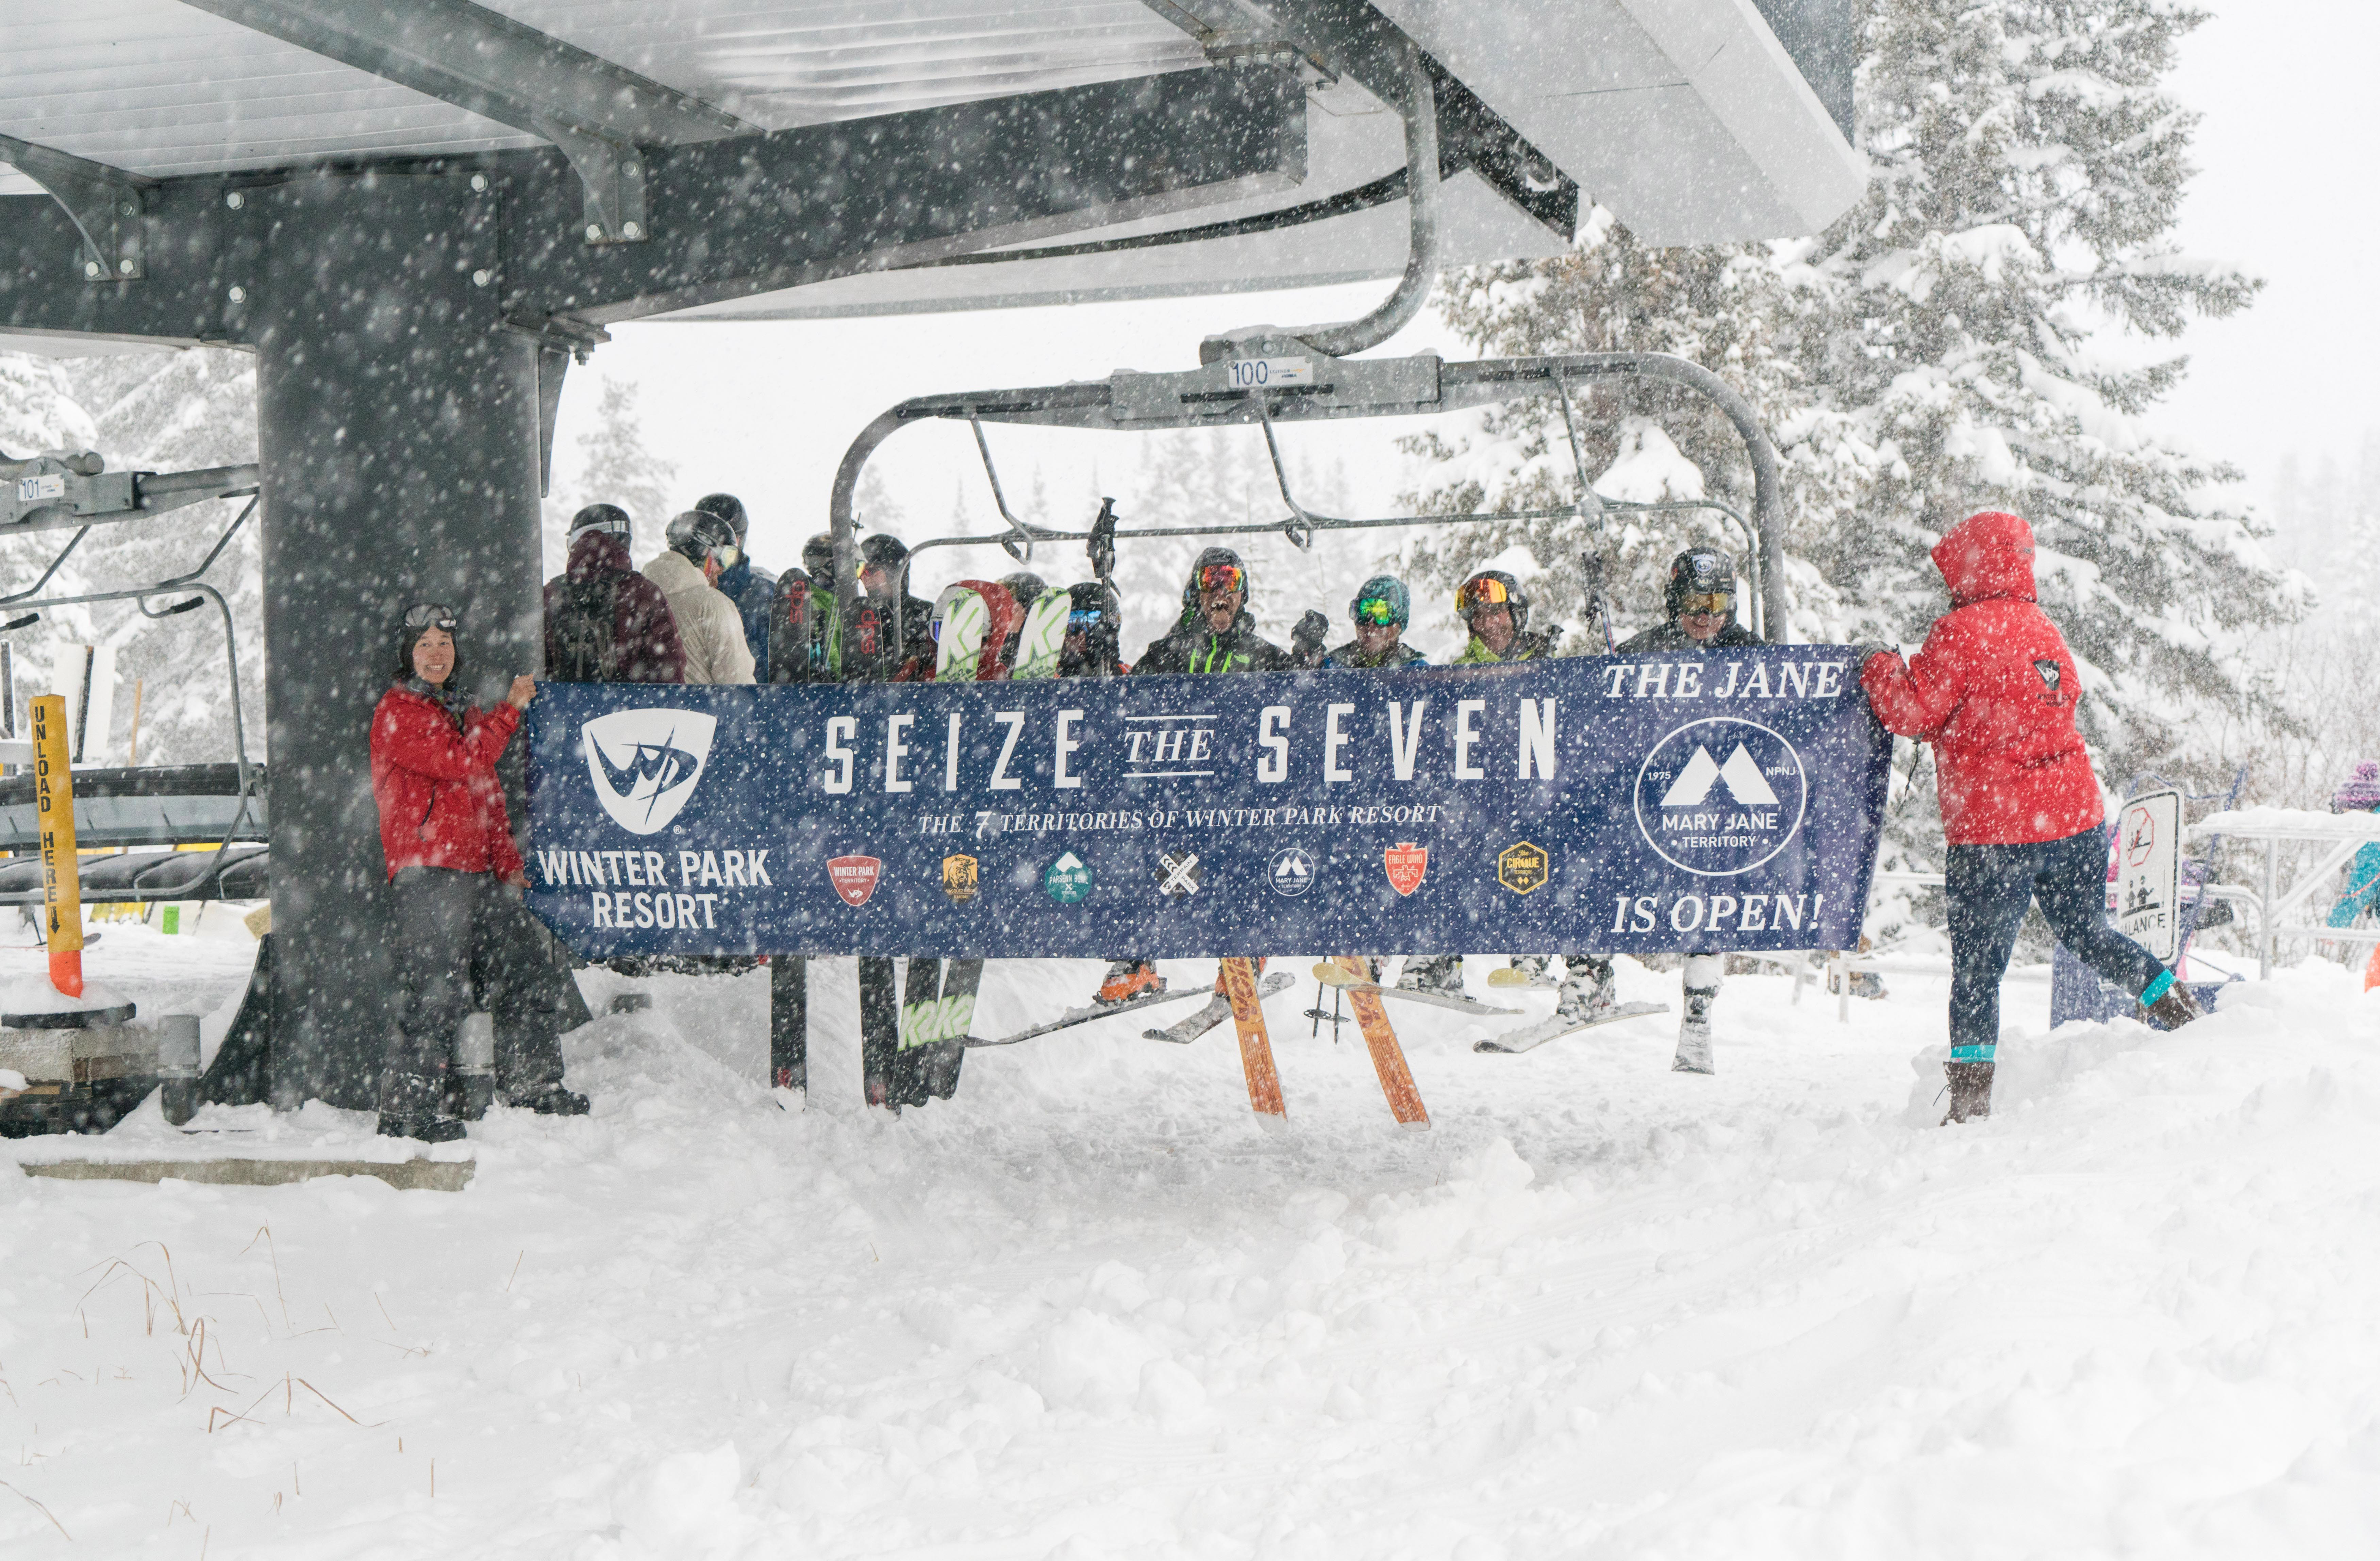 Mary Jane Ski Area opens (credit: Carl Frey/Winter Park)